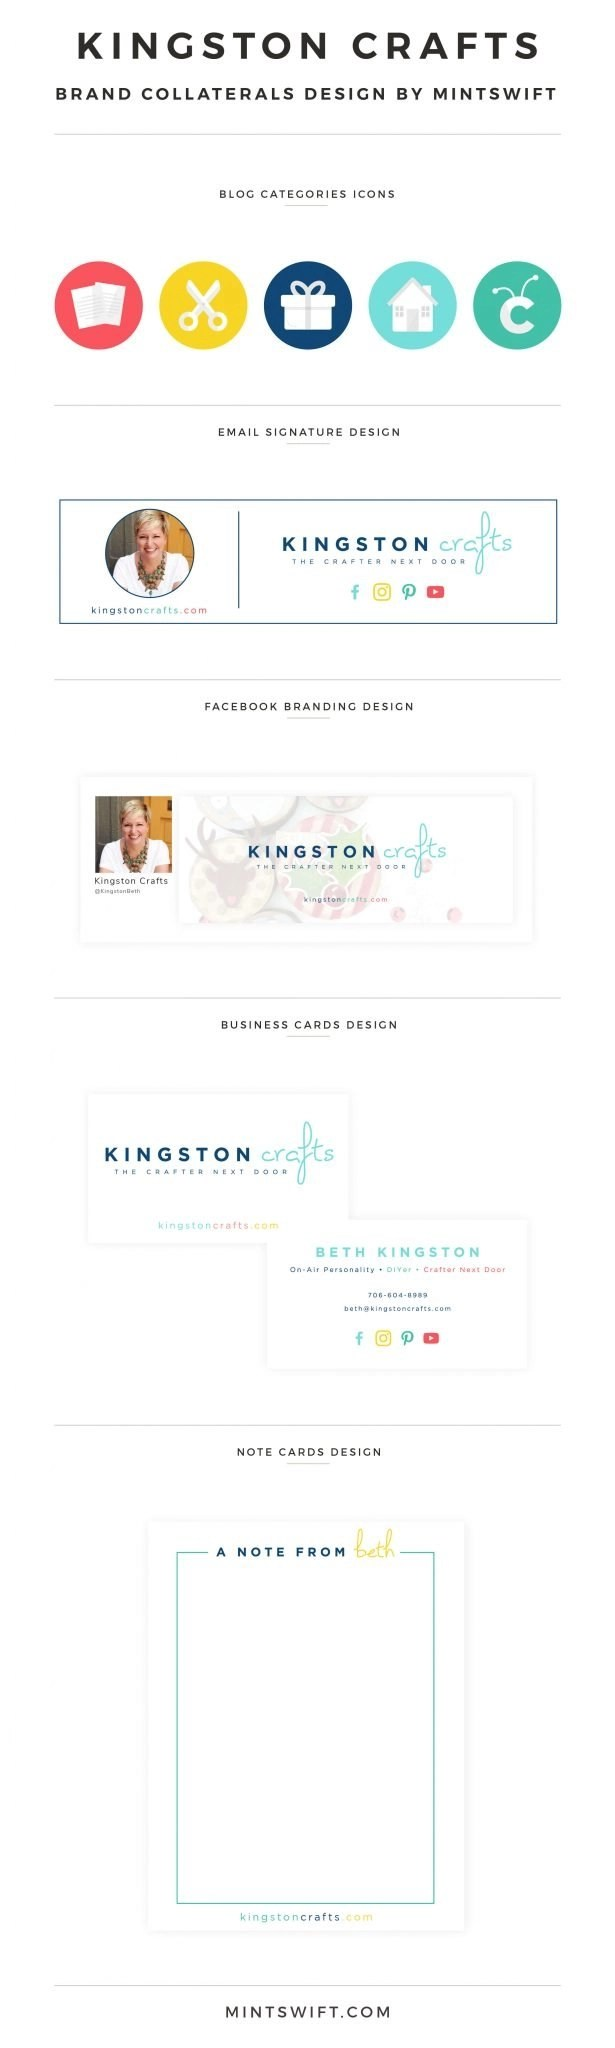 Kingston Crafts - Brand Collaterals Design by MintSwift